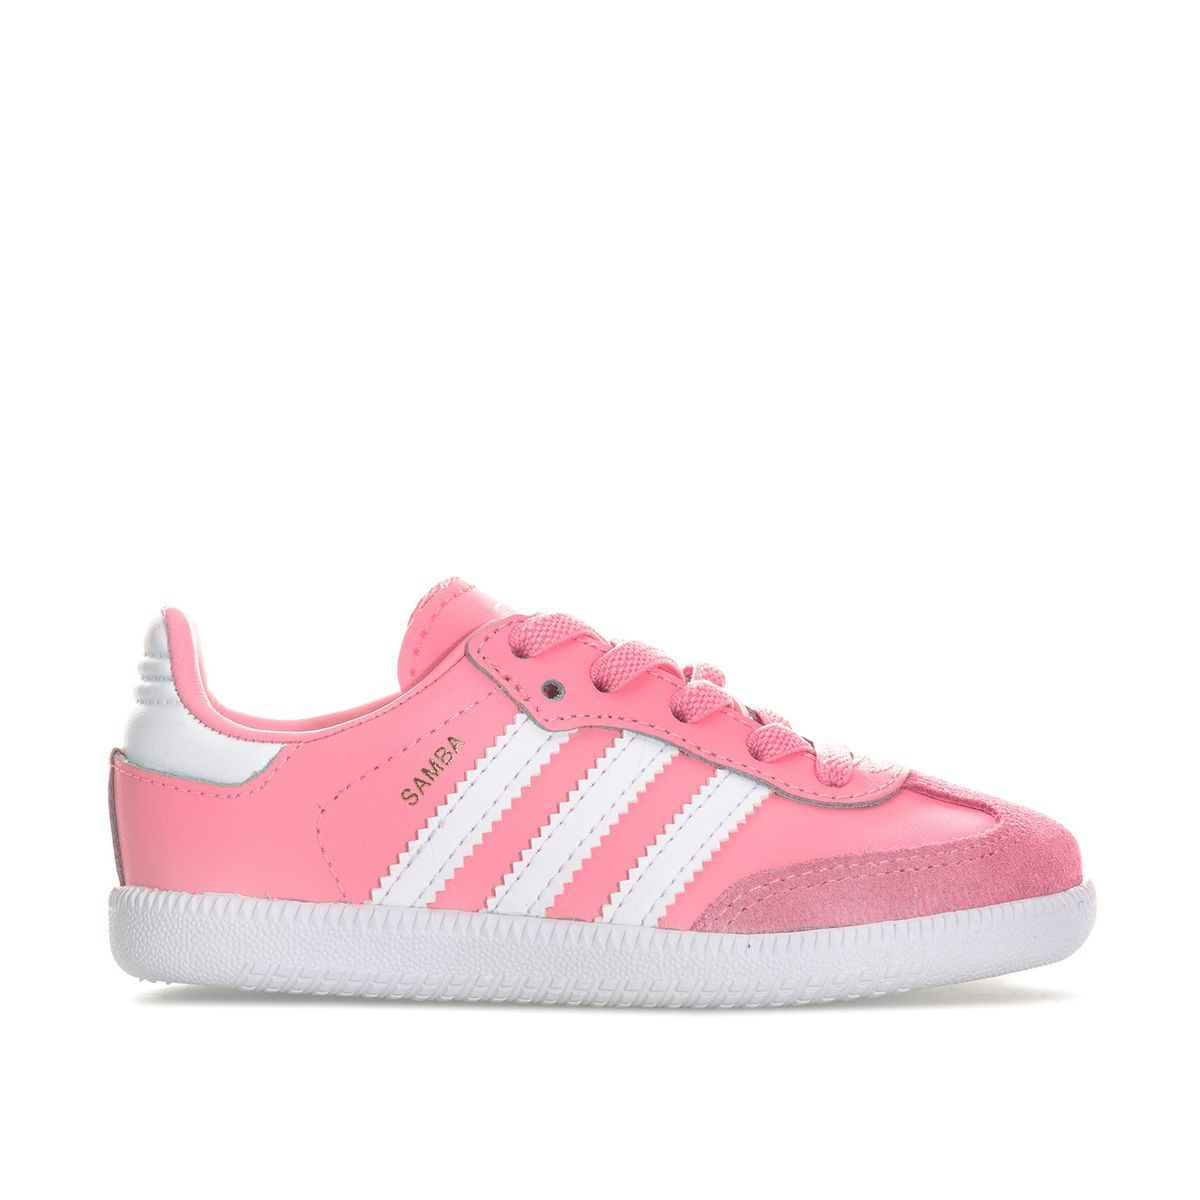 chaussures adidas fille 26